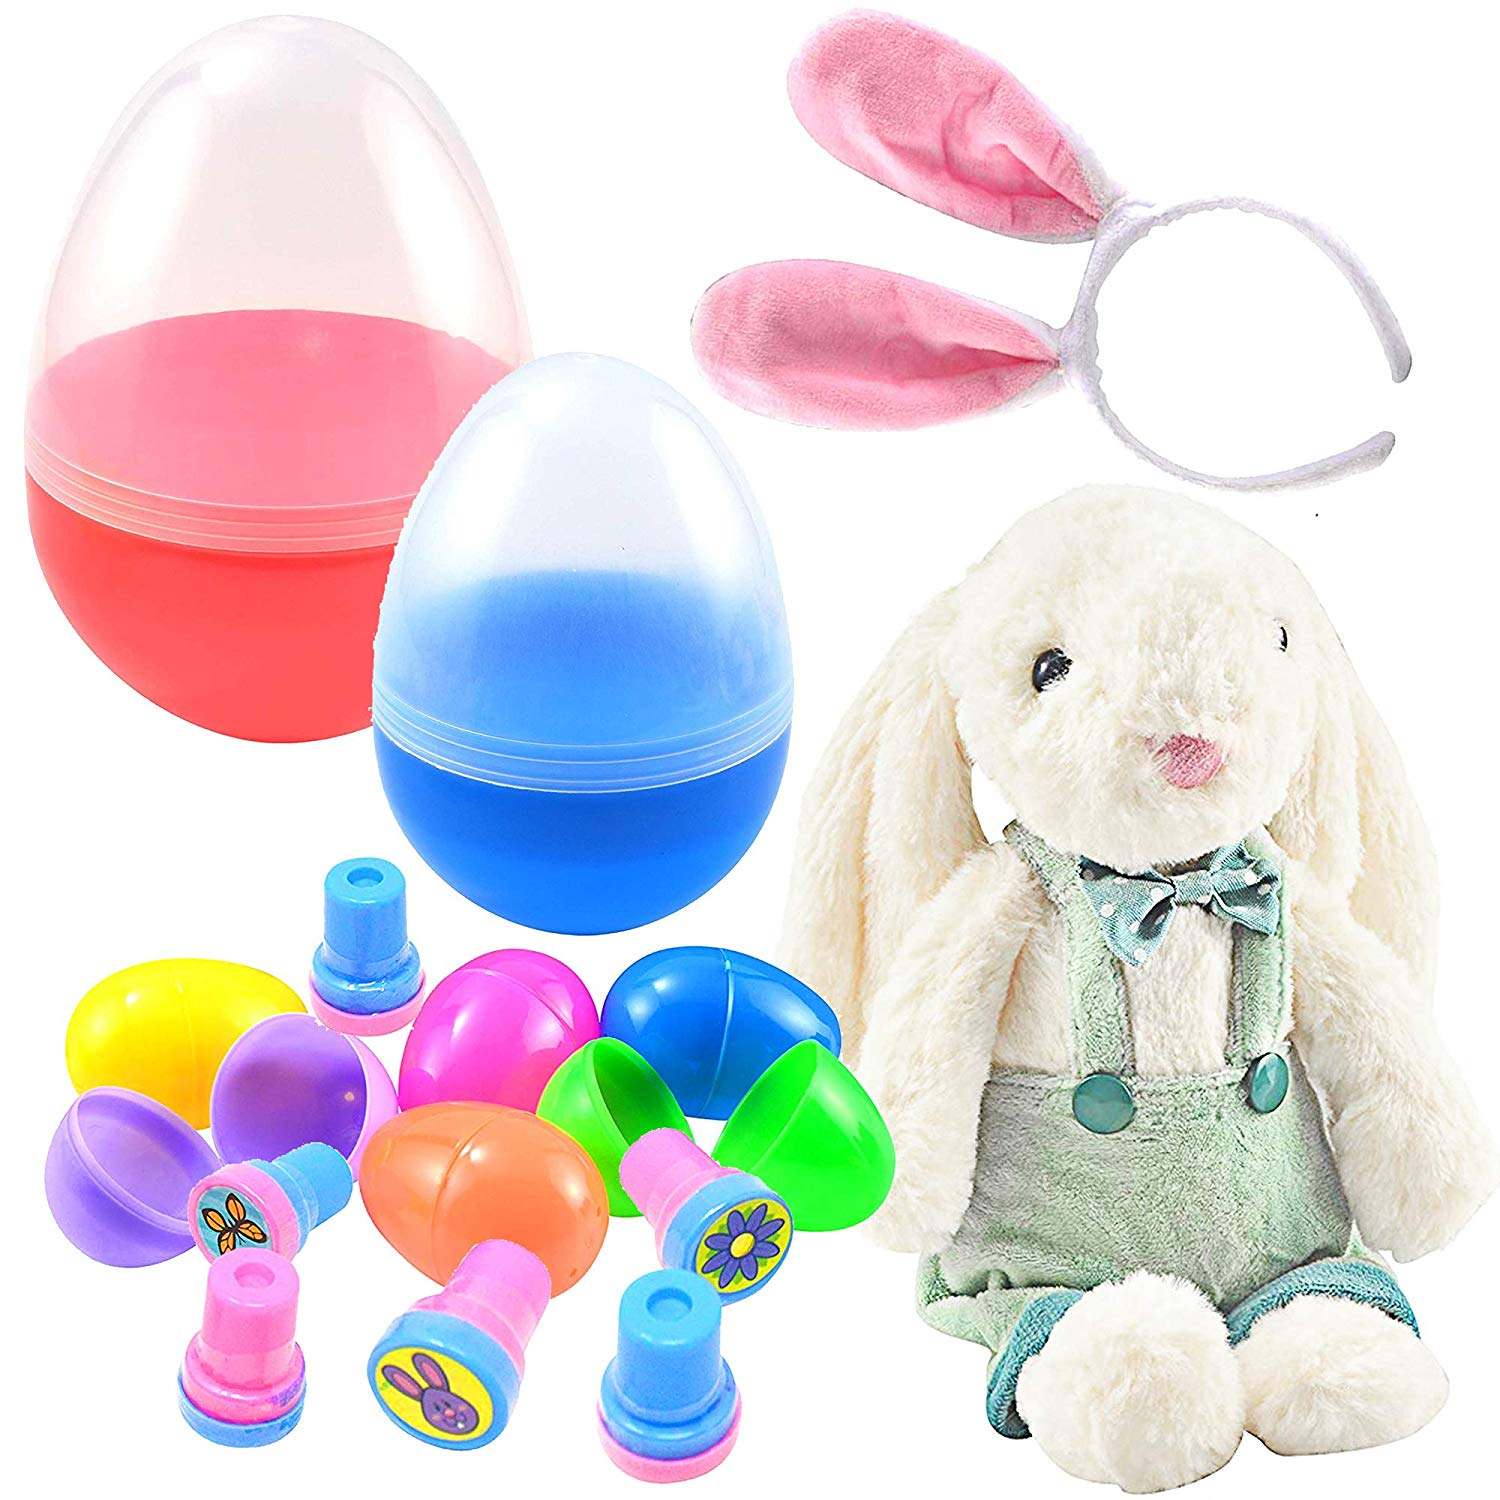 Jumbo Easter Egg Prefilled with Plush Easter Bunny and Ear Headband